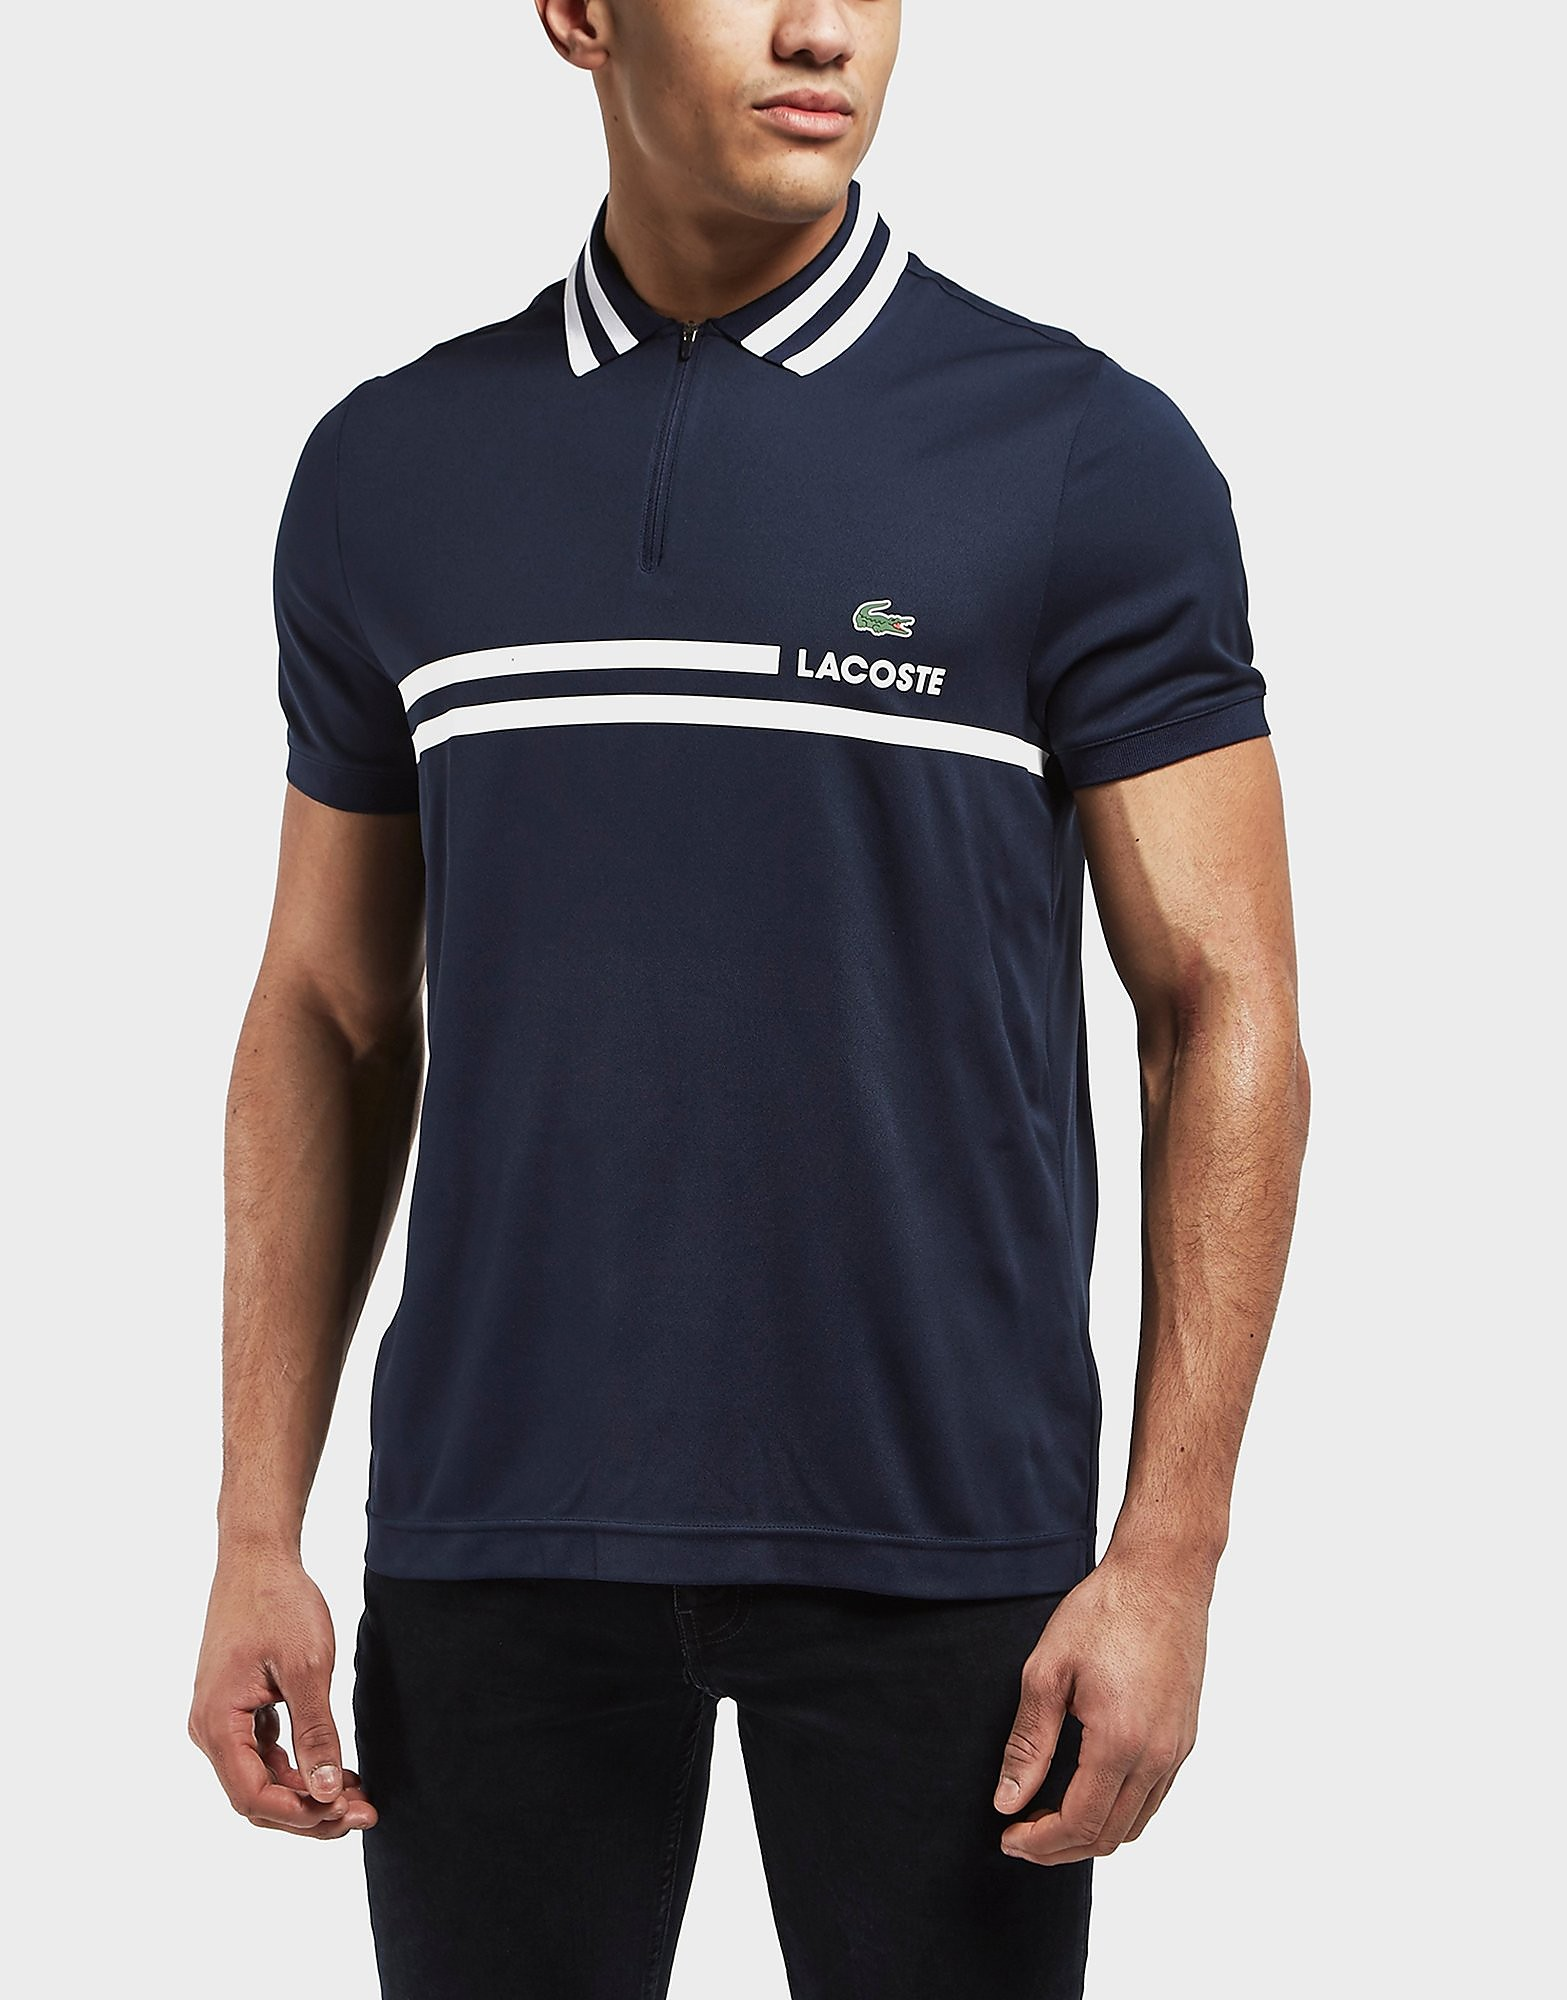 Lacoste Tipped Pique Poly Short Sleeve Polo Shirt